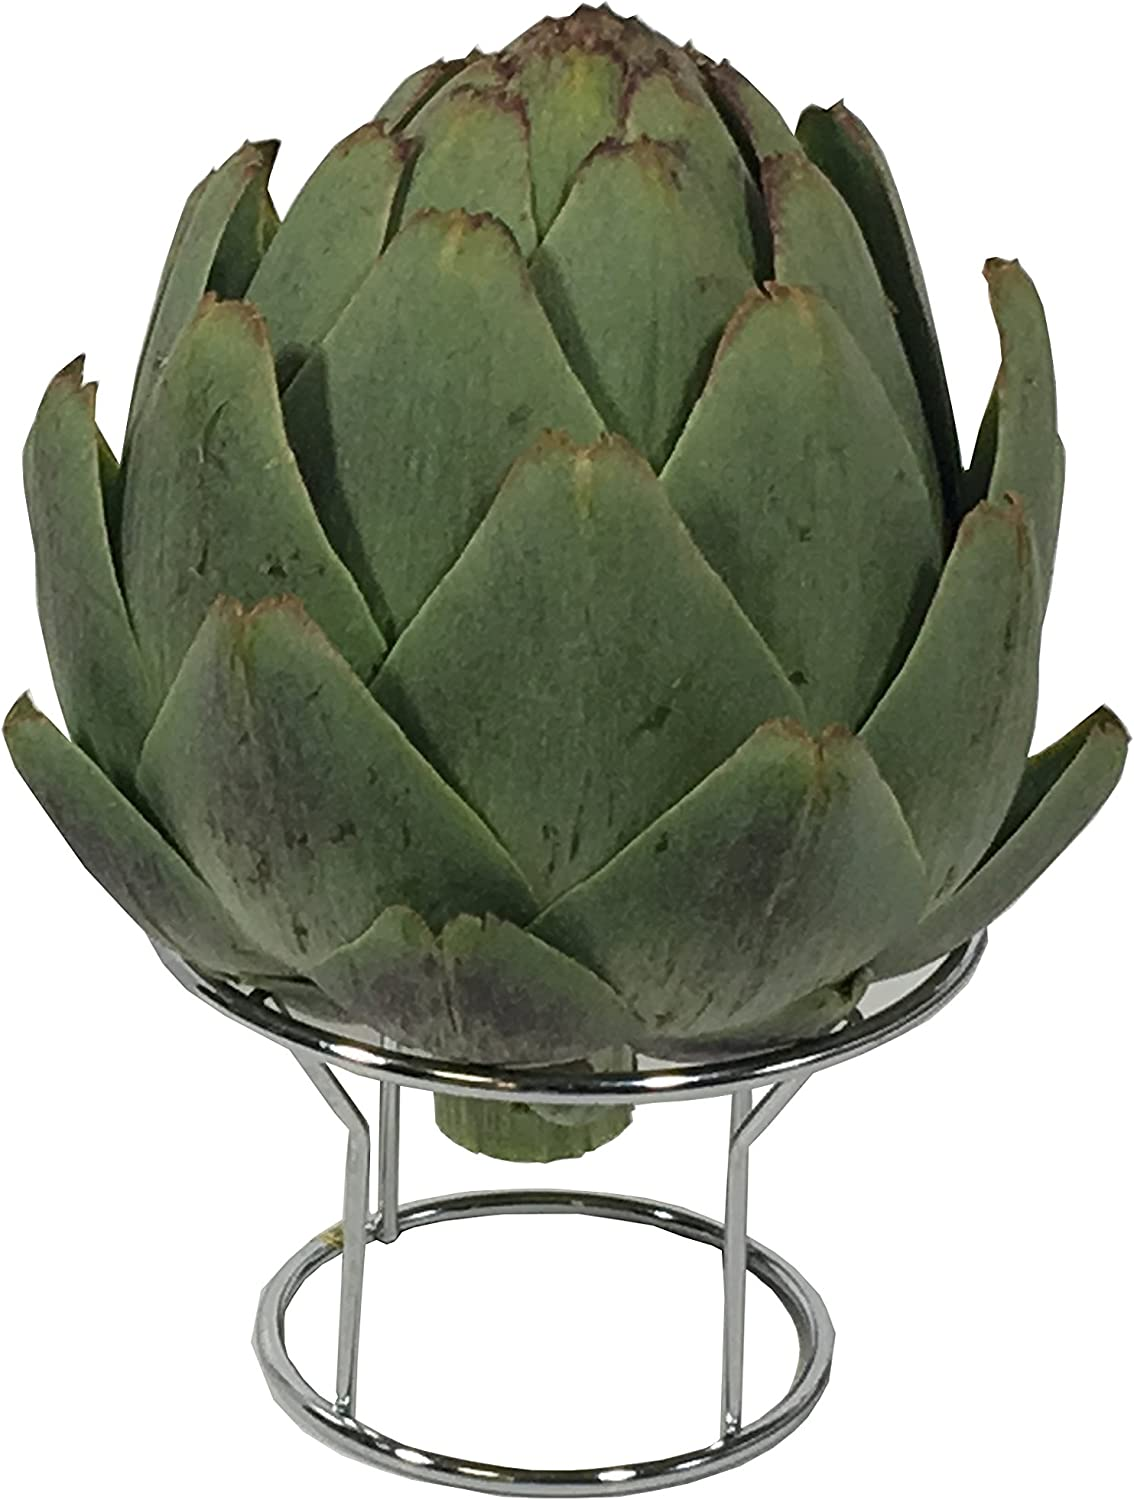 Down To Earth Stainless Steel Wire Artichoke Steamer and Holder Rack